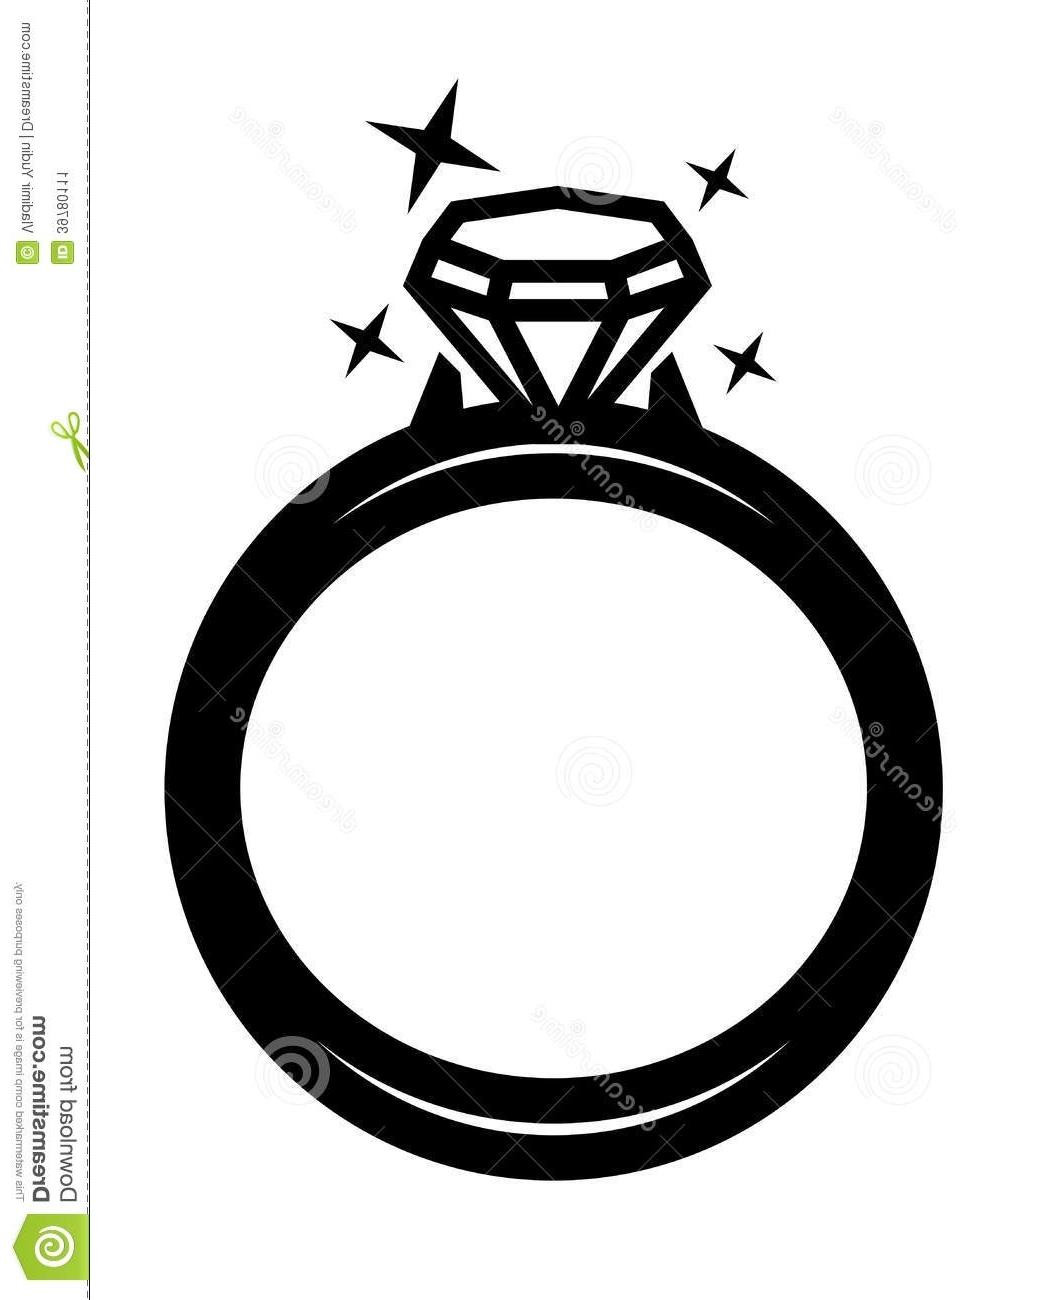 1043x1300 Wedding Ring Vector Wedding Ring Silhouette Botanicus Interactic